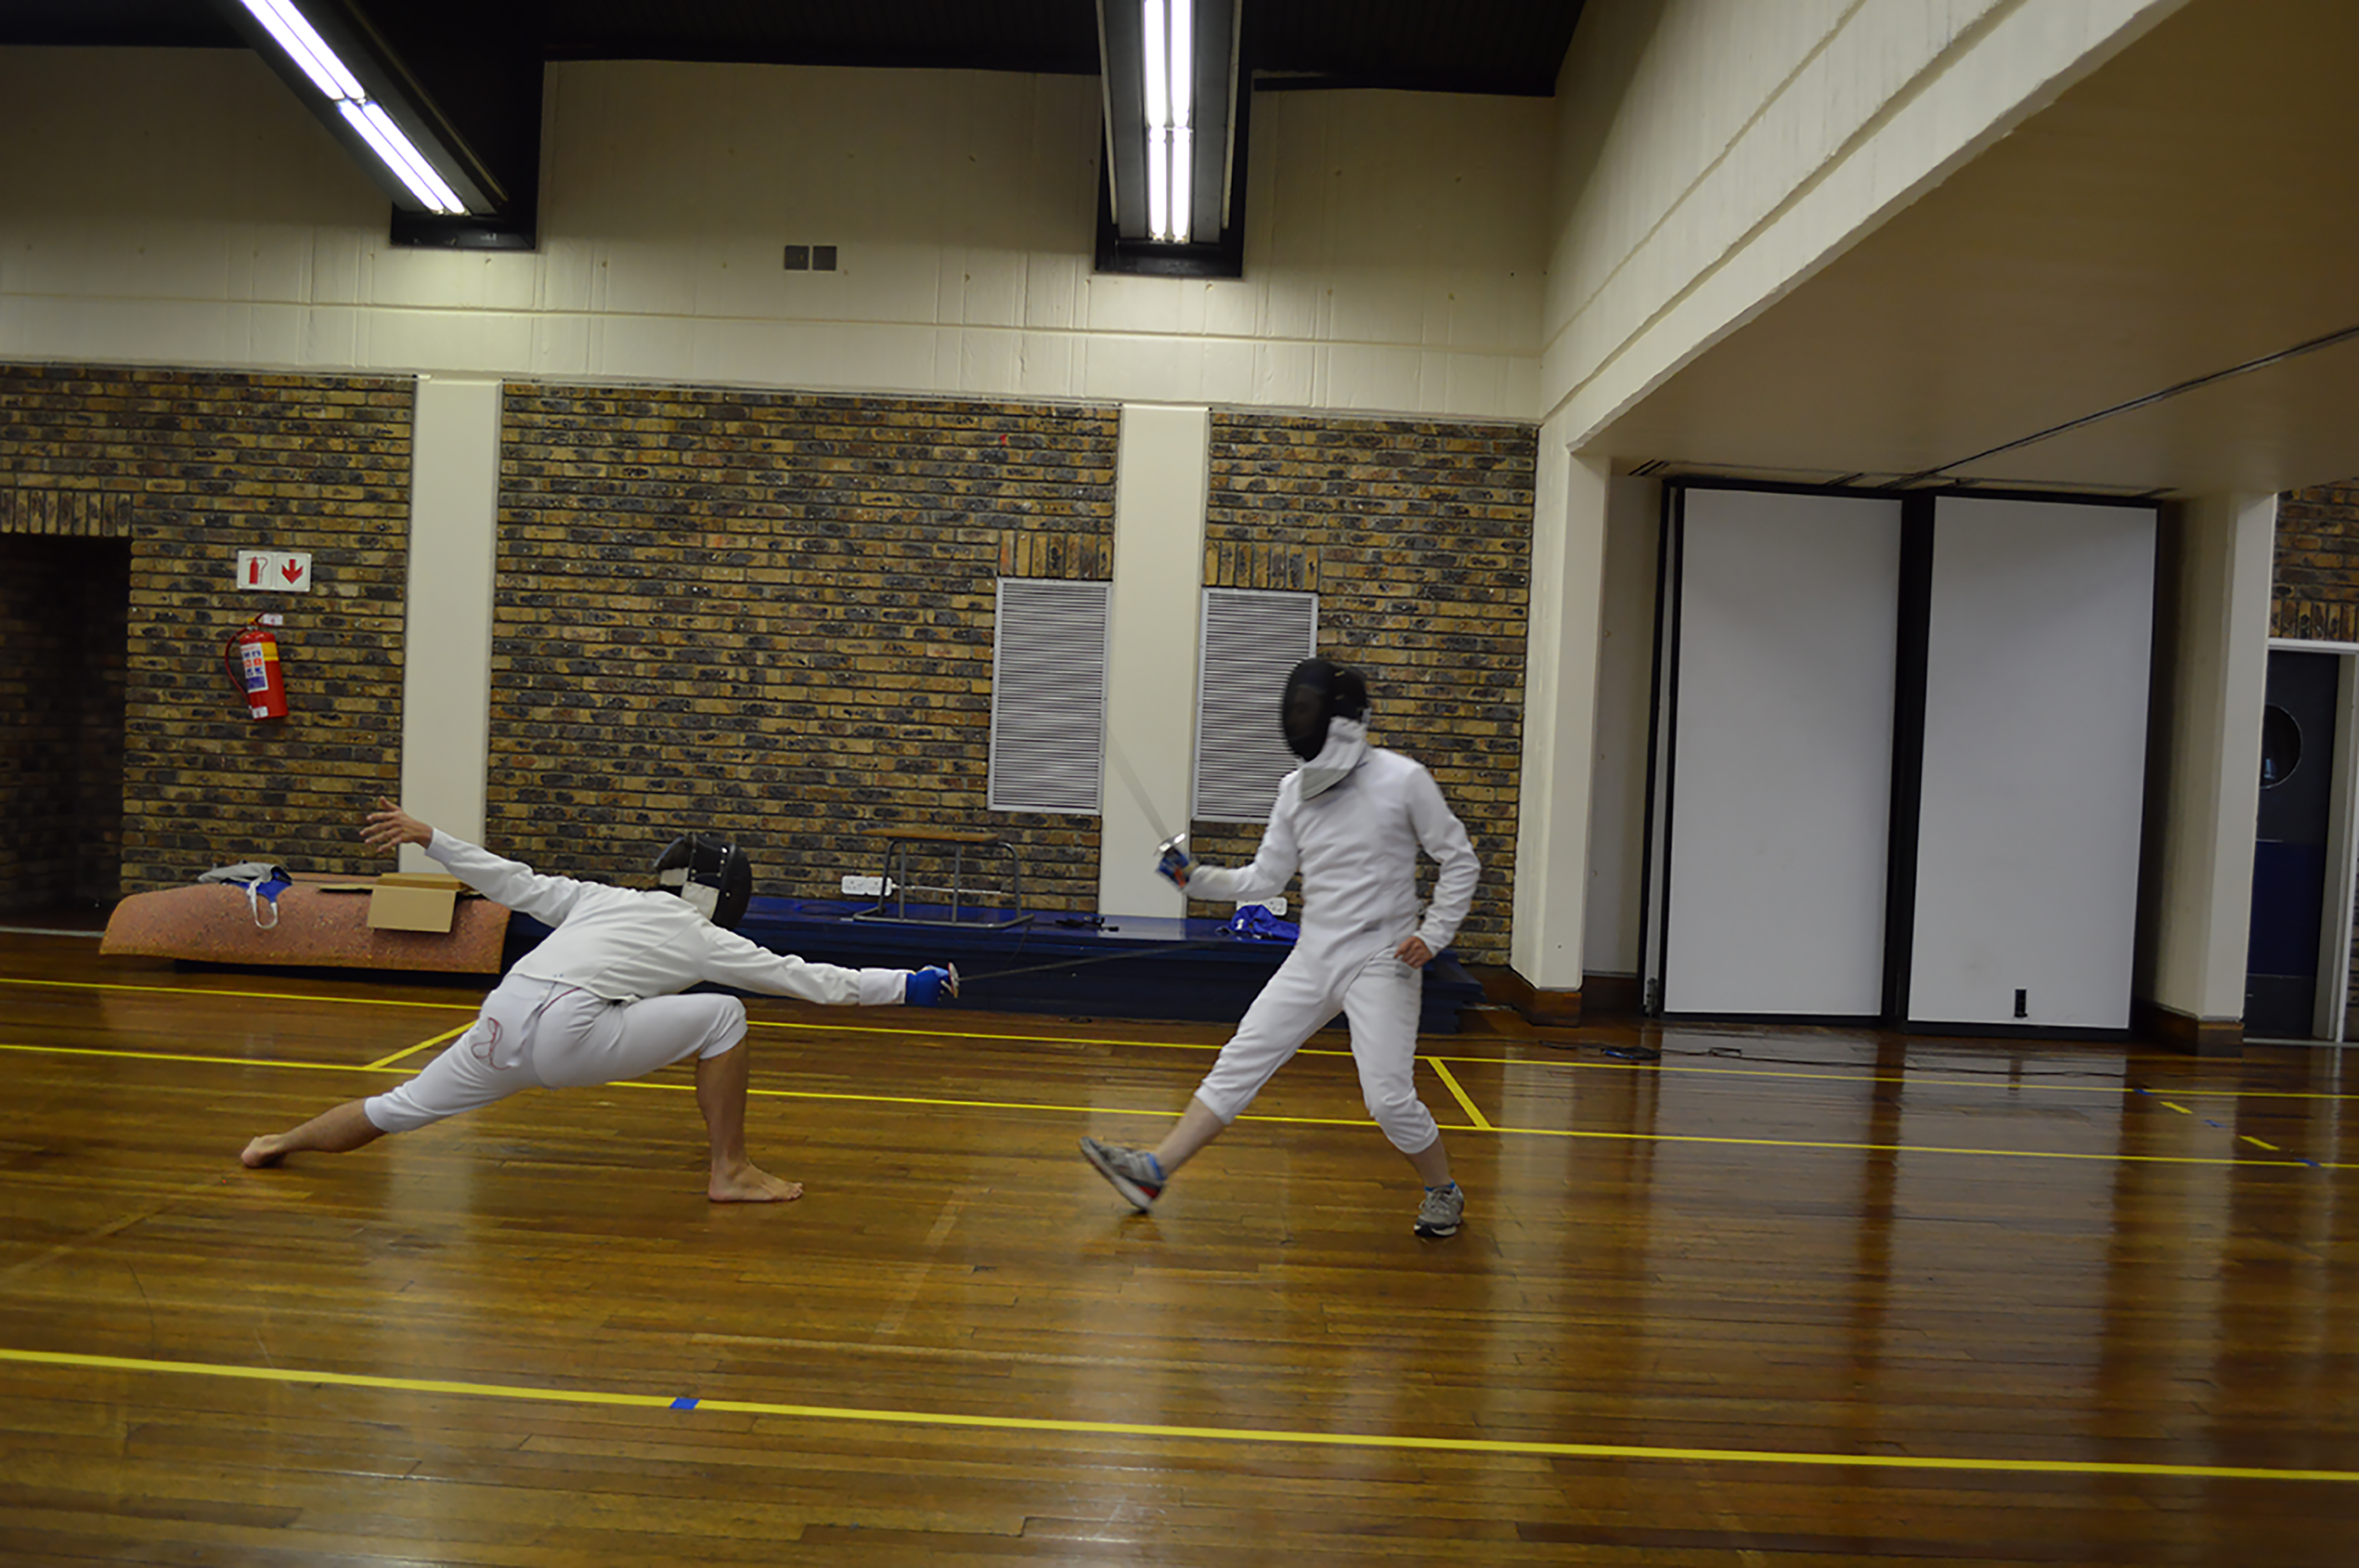 Wits Fencing Club Stays En Garde Wits Vuvuzela